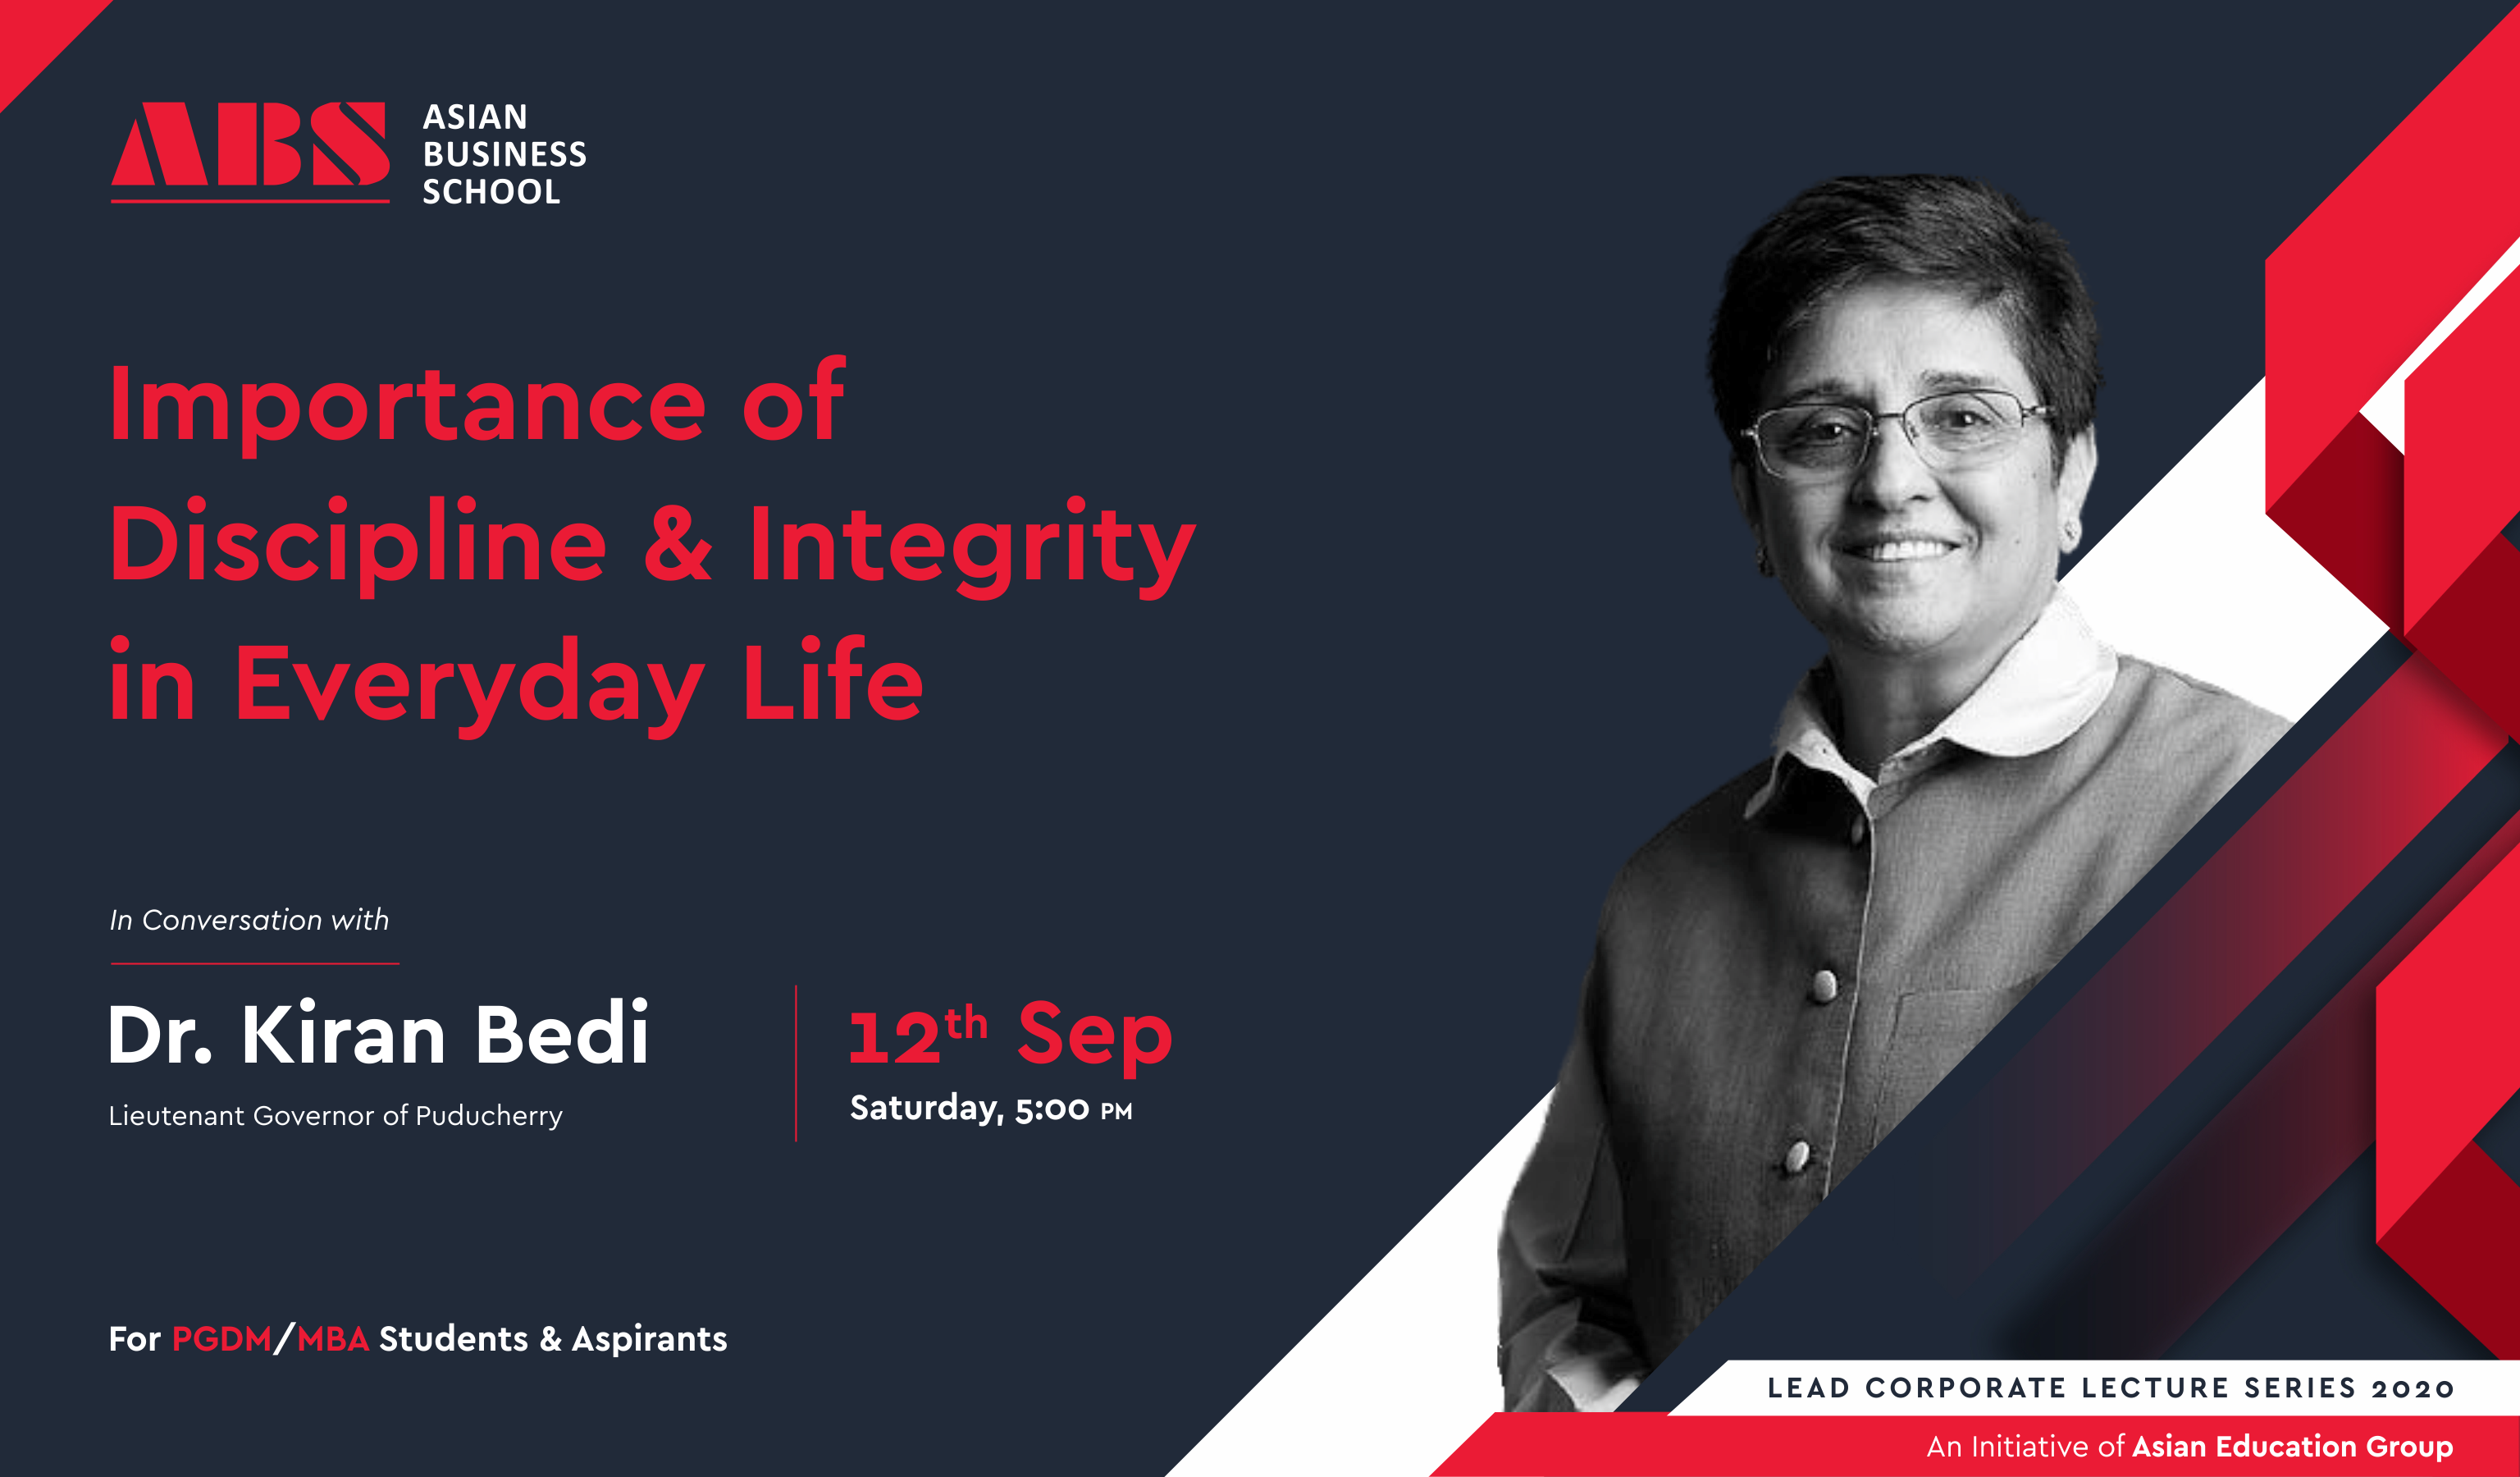 """ABS to organize a Live WEBINAR on """"Importance of Discipline & Integrity in Everyday Life"""" by Dr. Kiran Bedi, Lieutenant Governor of Puducherry!"""